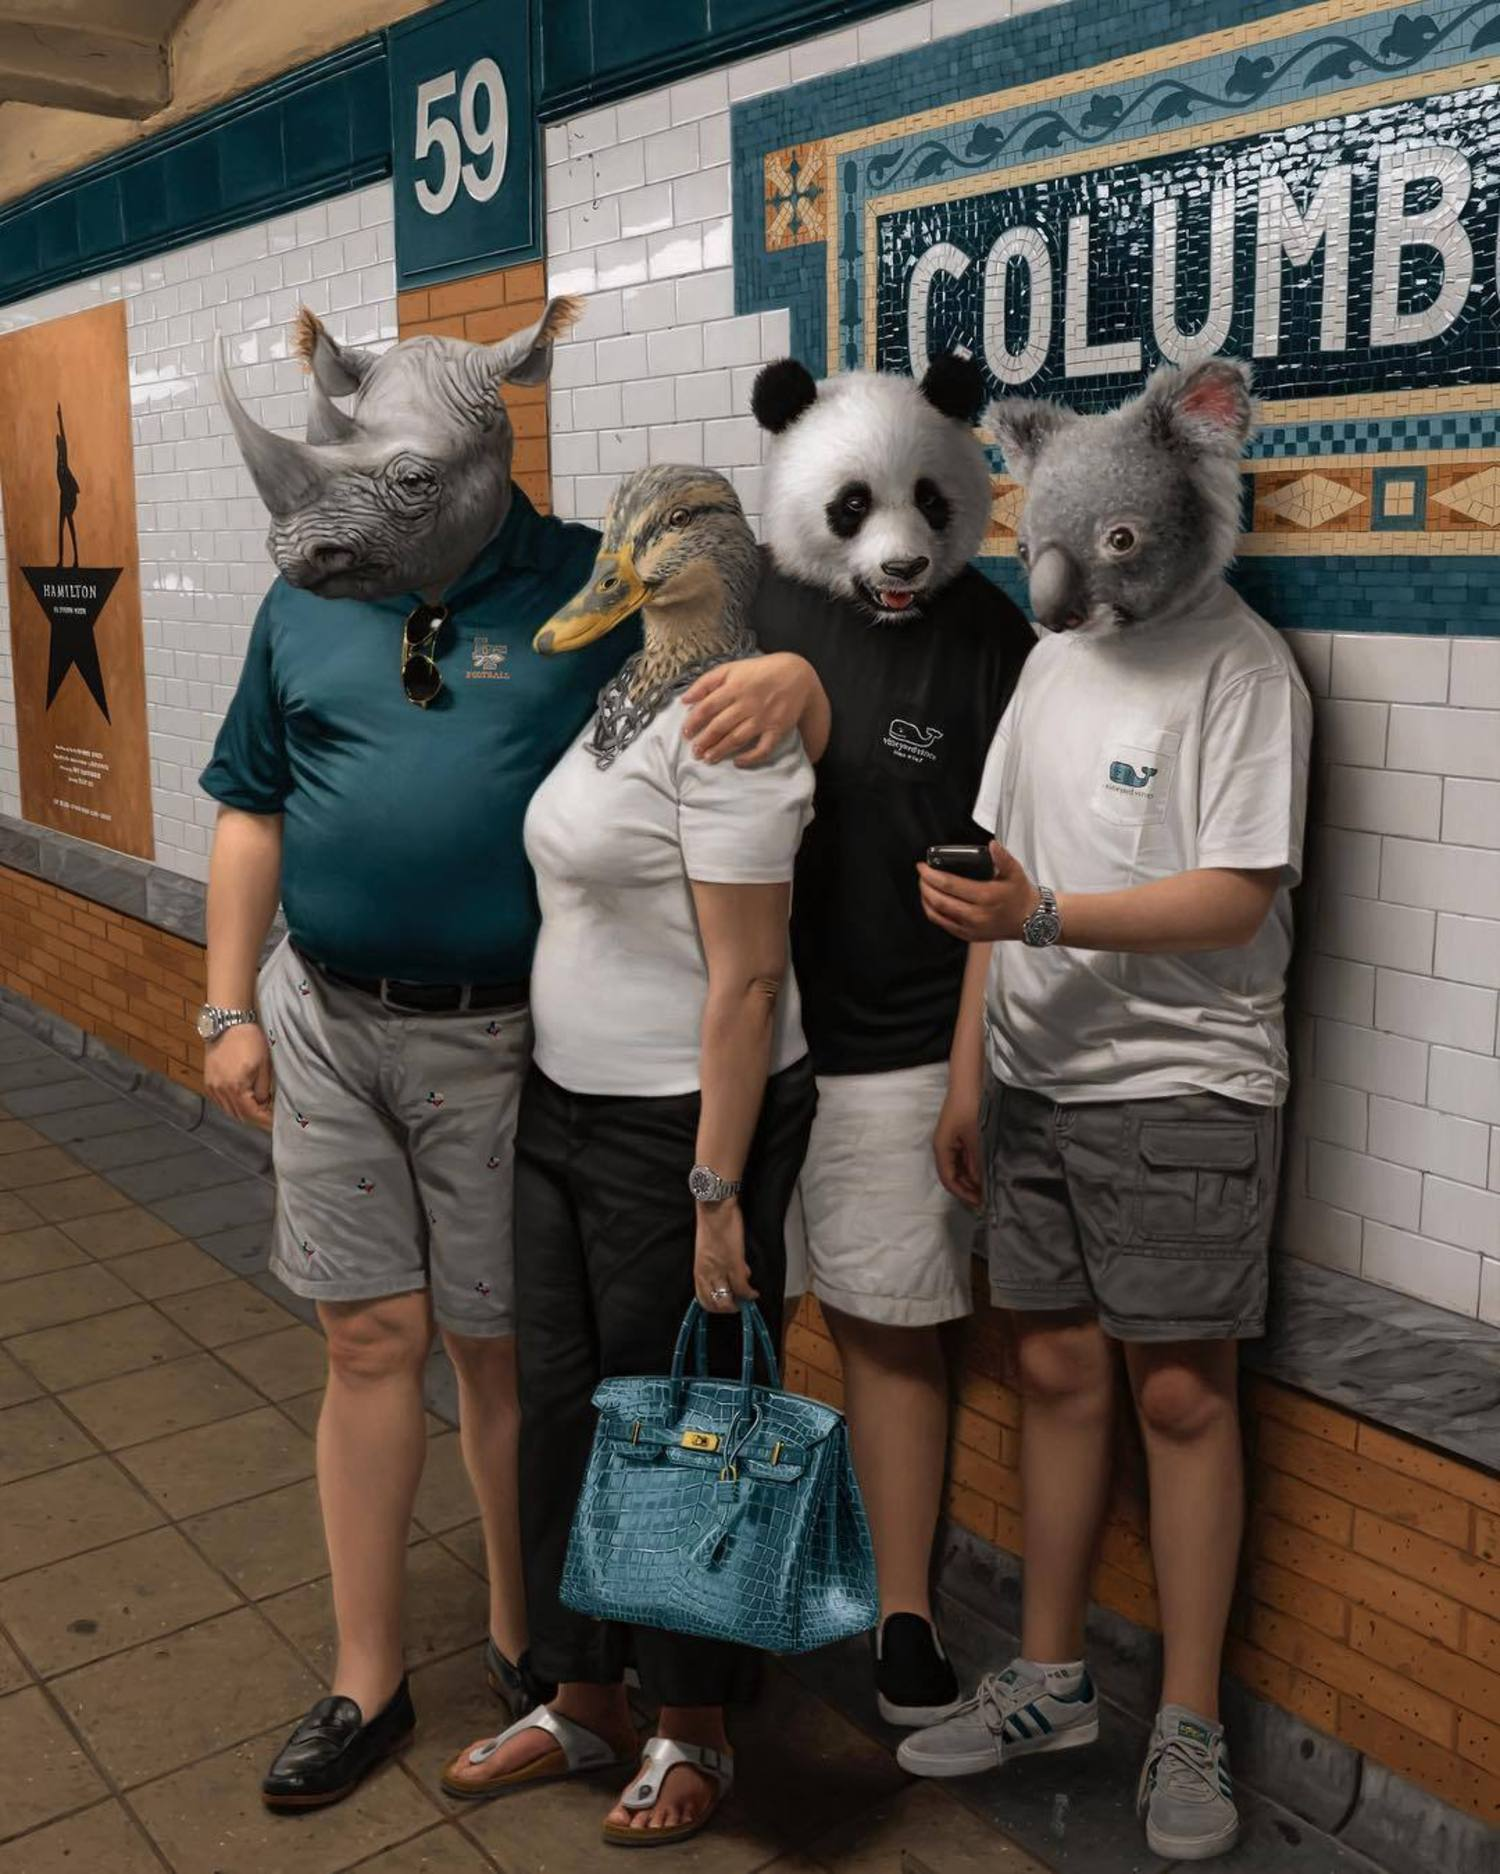 It's summer vacation and this family is waiting for the train at Columbus Circle to start a fun New York adventure! This is the first piece I've done with different animals. 🦏🦆🐼🐨 While I was painting I was thinking about how each animal captured the specific personality of the person. A fun little detail: all the animals are herbivores and yet the mother's bag is alligator skin. A little twist to predator/prey dynamic. At 40 x 55 inches this is one of the largest oil paintings I've made to date.